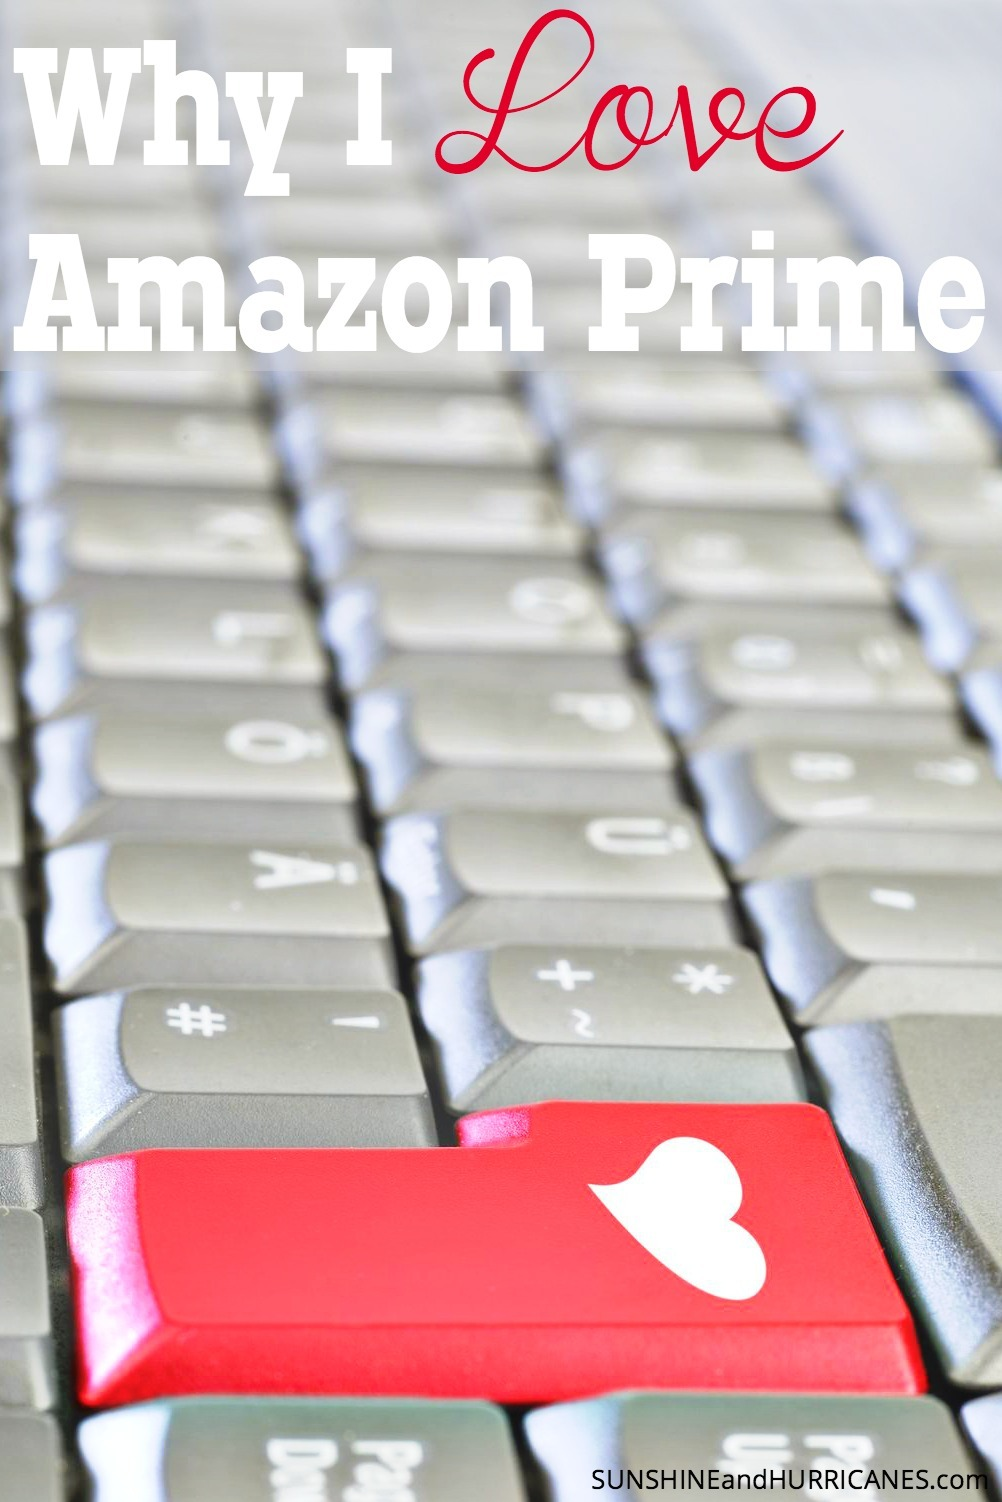 Have you been wondering what the advantages are of Amazon Prime? You can save money and time if you know how to use it and you will quickly discover it can be one of the best investments your family makes. Why I Love Amazon Prime. SunshineandHurricanes.com